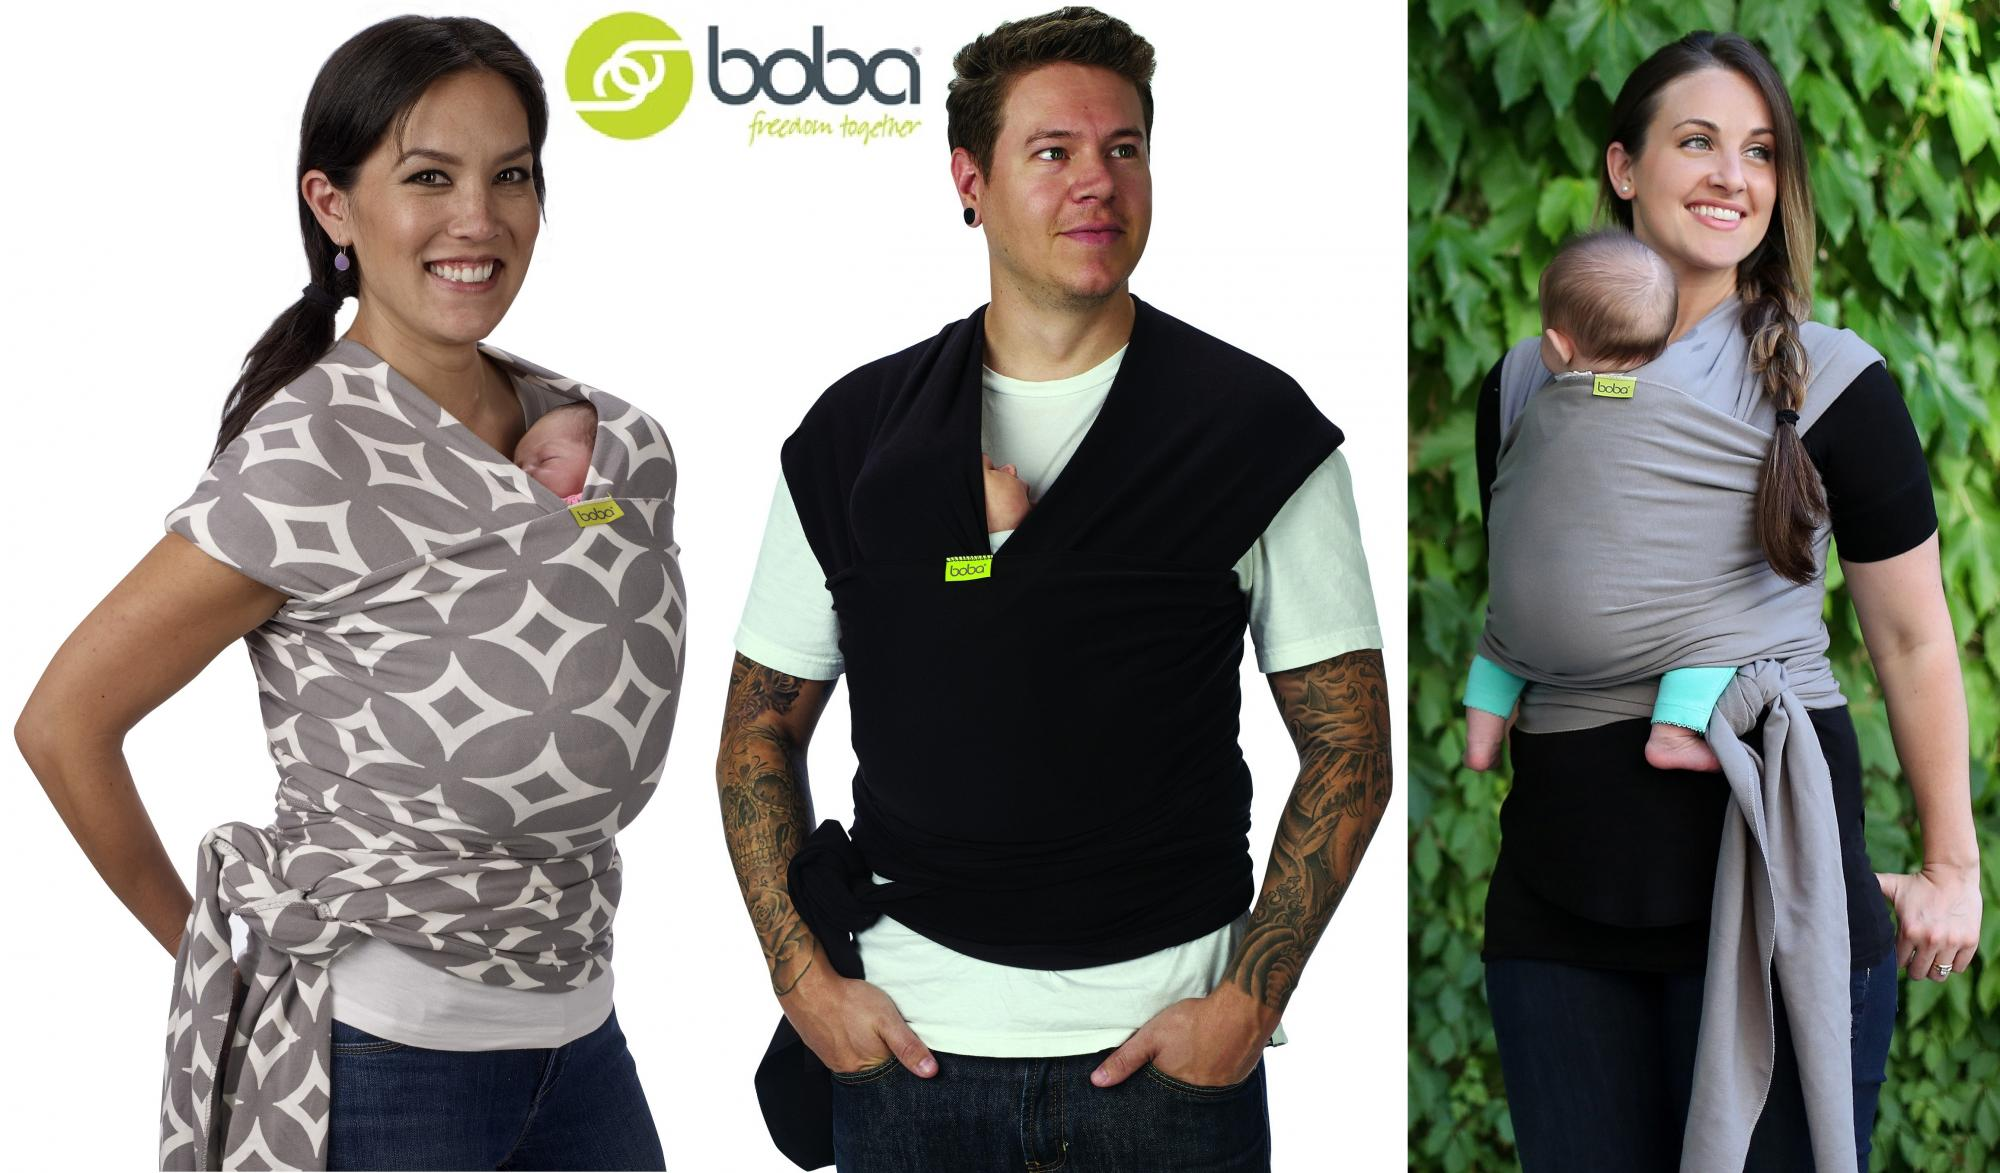 boba-wrap-baby-carrier-all.jpg